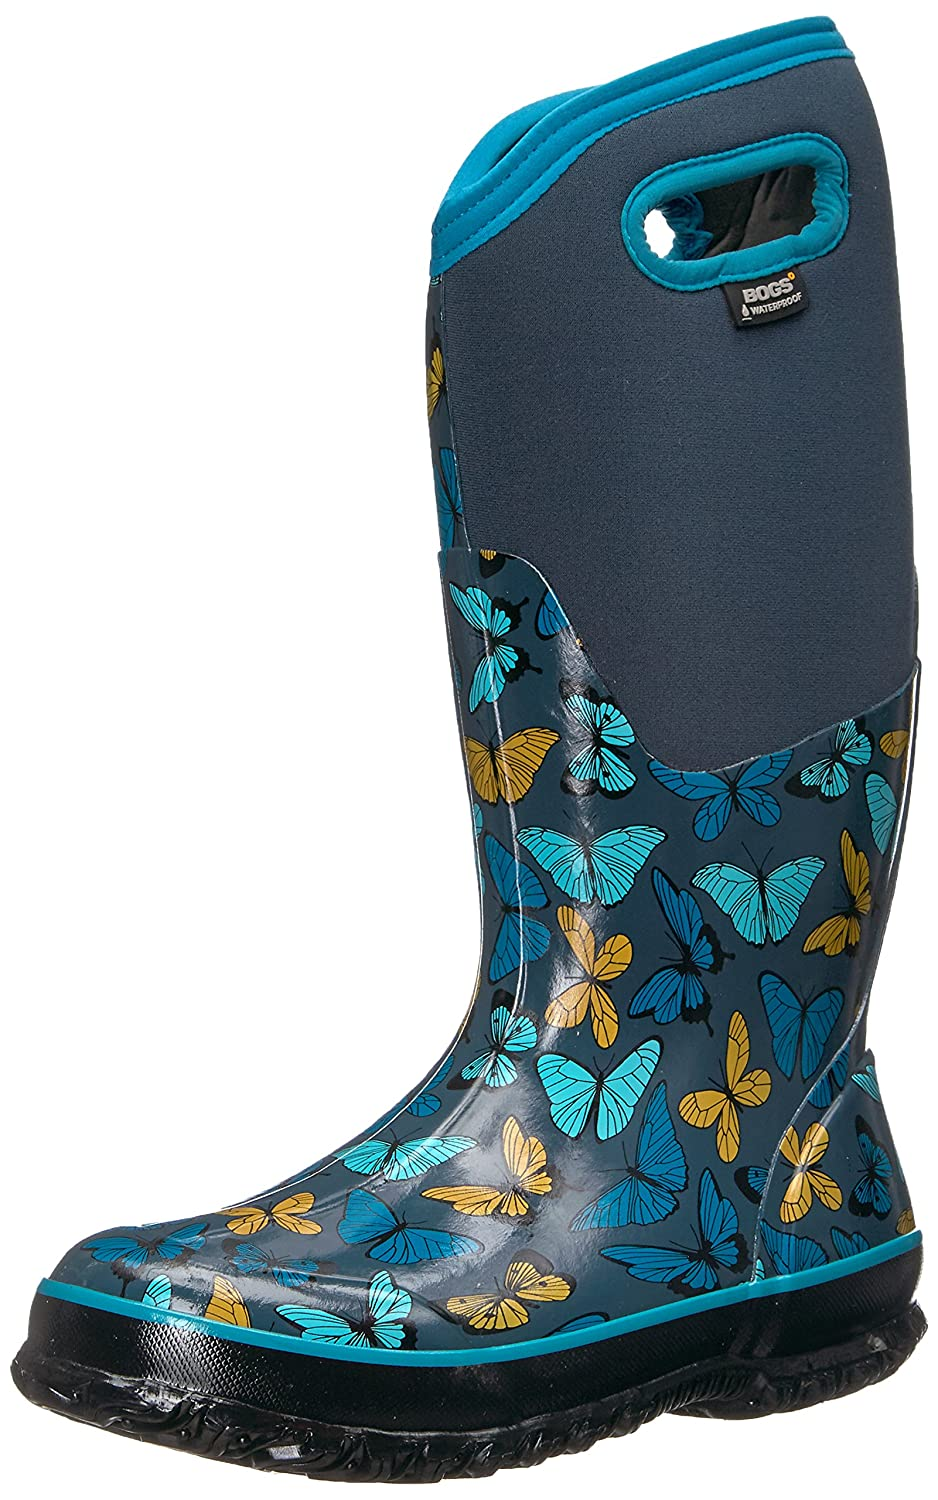 Bogs Women's Classic Butterflies Snow Boot B01MUDZKN1 6 B(M) US|Navy Multi